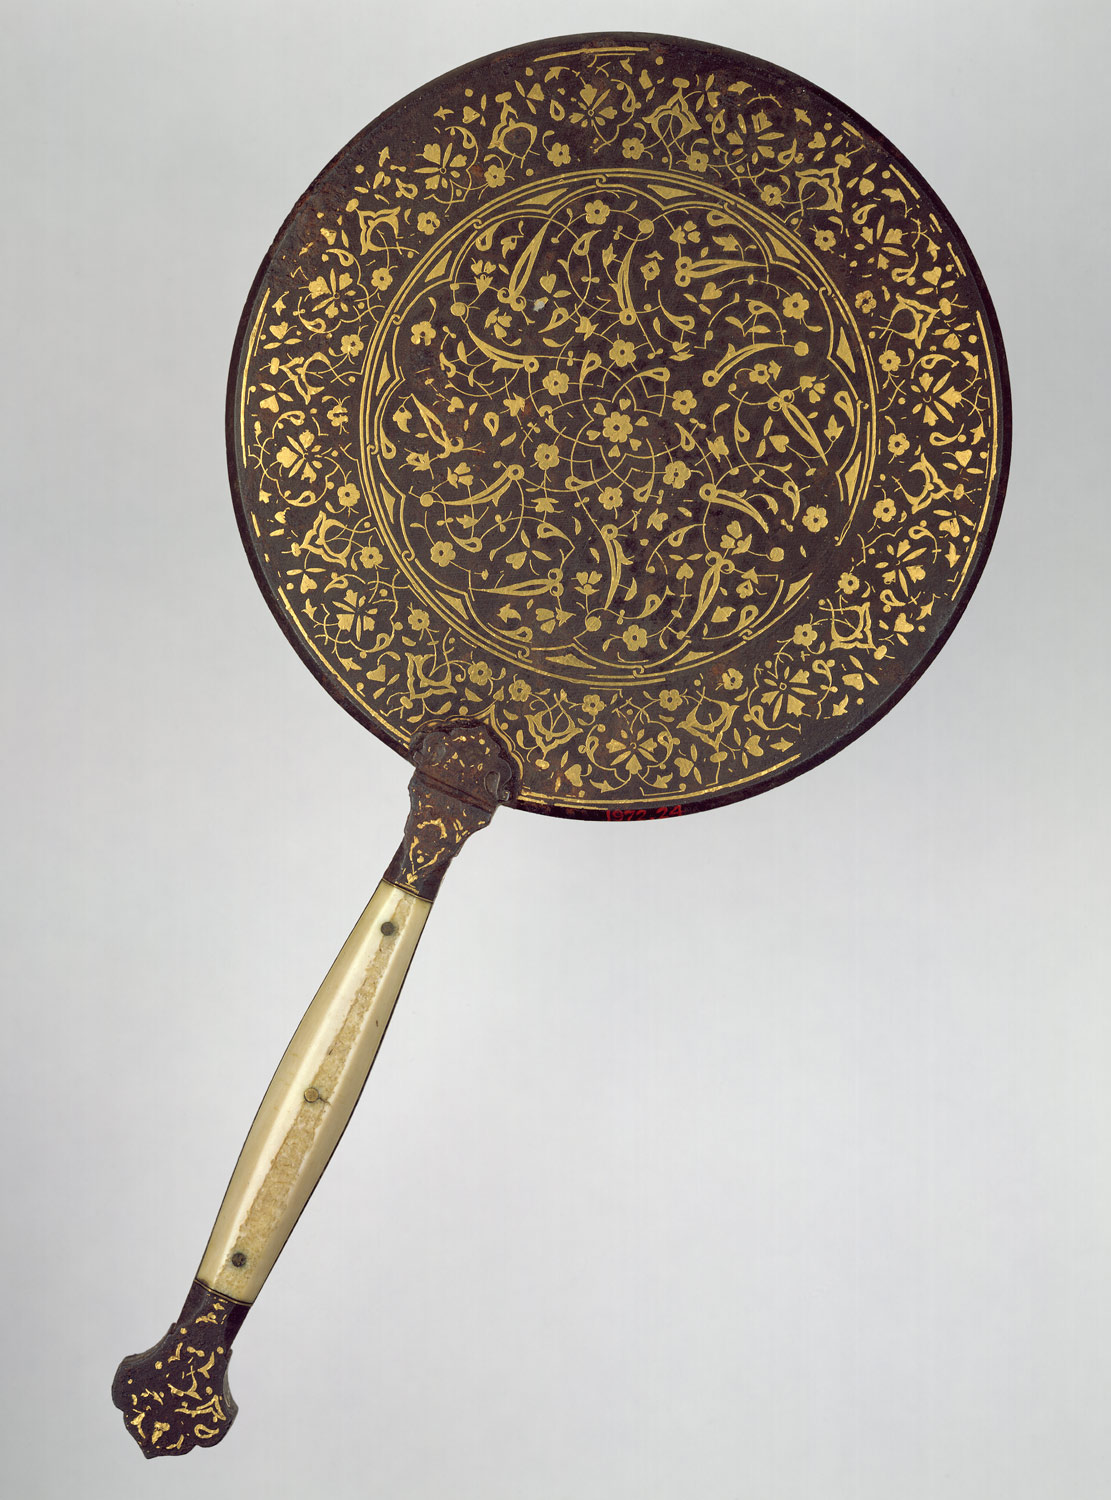 Mirror with split-leaf palmette design inlaid with gold